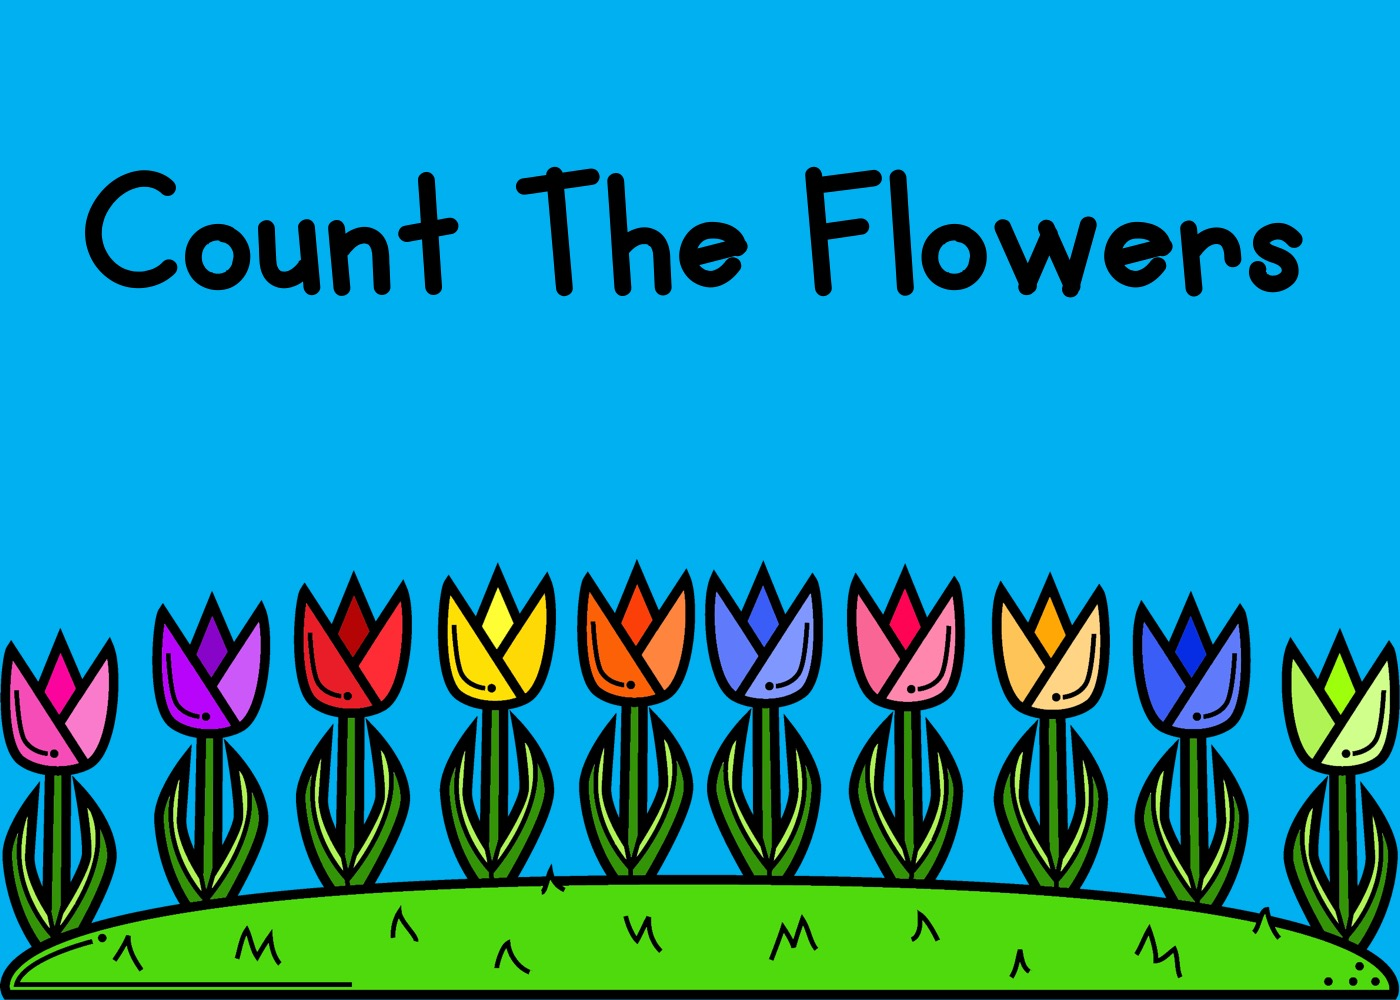 Fun Flower Printables for Preschool and Kindergarten | Spring Themed Math Games | Hands On Math Homeschool Activities | Kids Classroom Center Ideas and Worksheets #FreePrintableWorksheetsForKids #flower #spring #clipcards